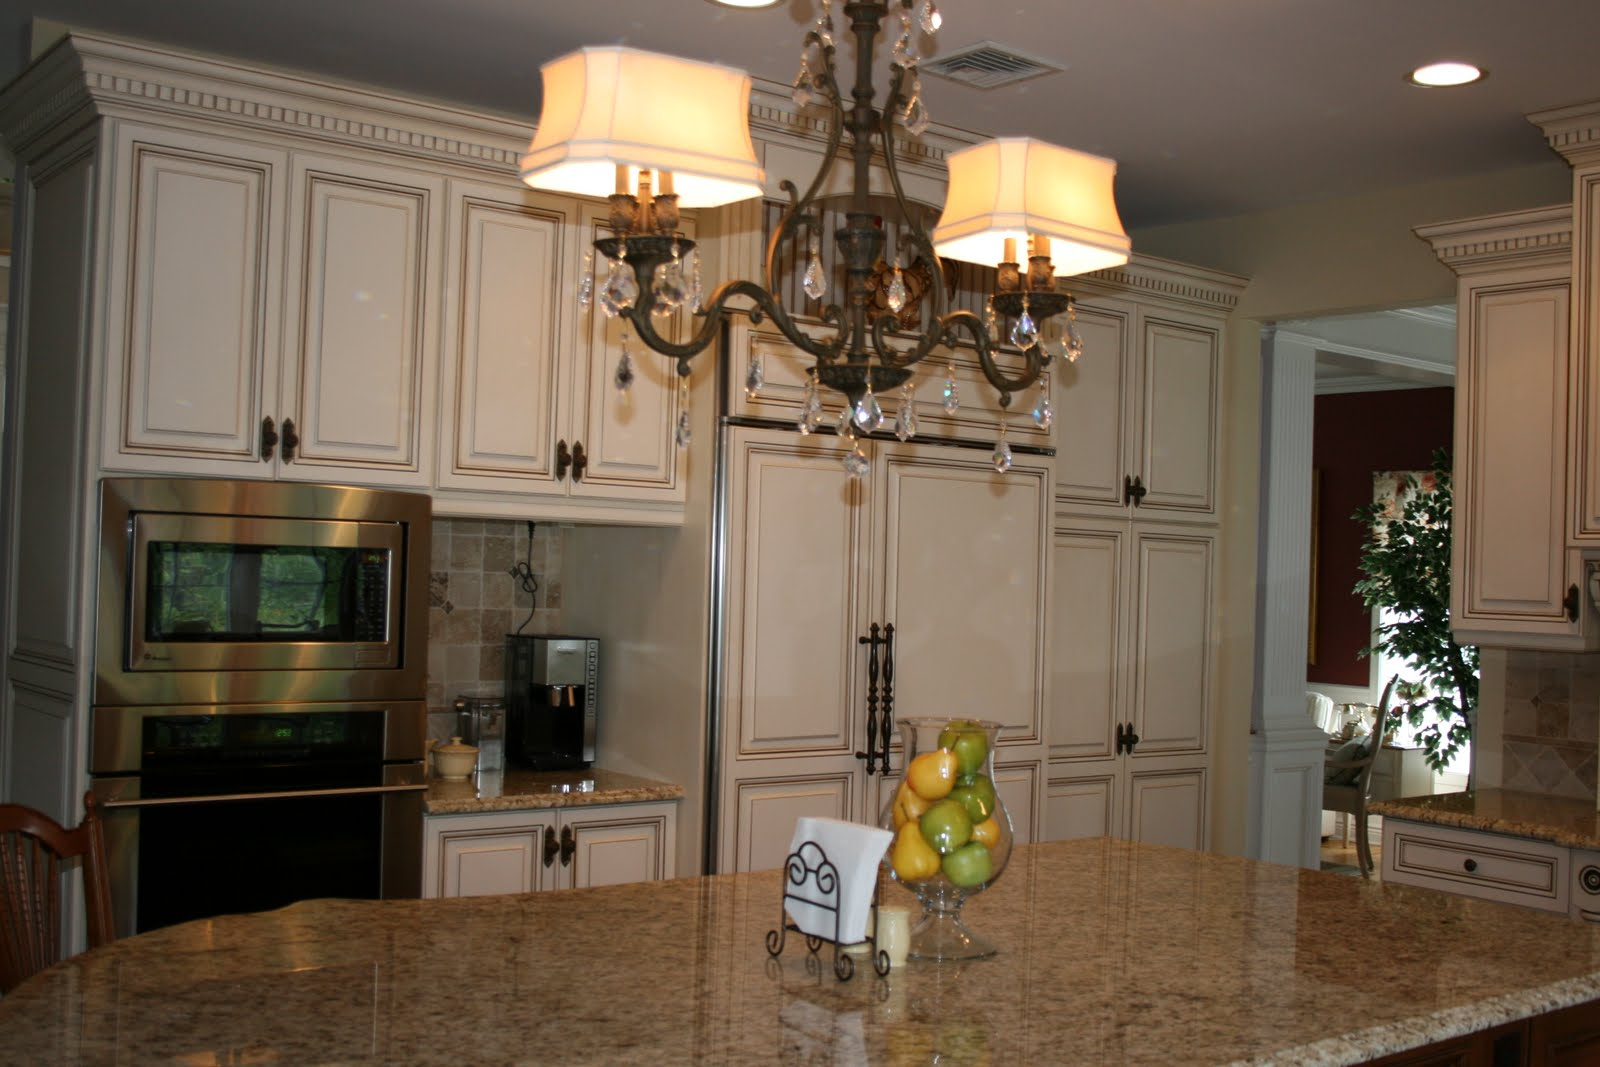 budget friendly kitchen makeover ideas budget kitchen remodel Budget friendly Kitchen Makeover Ideas